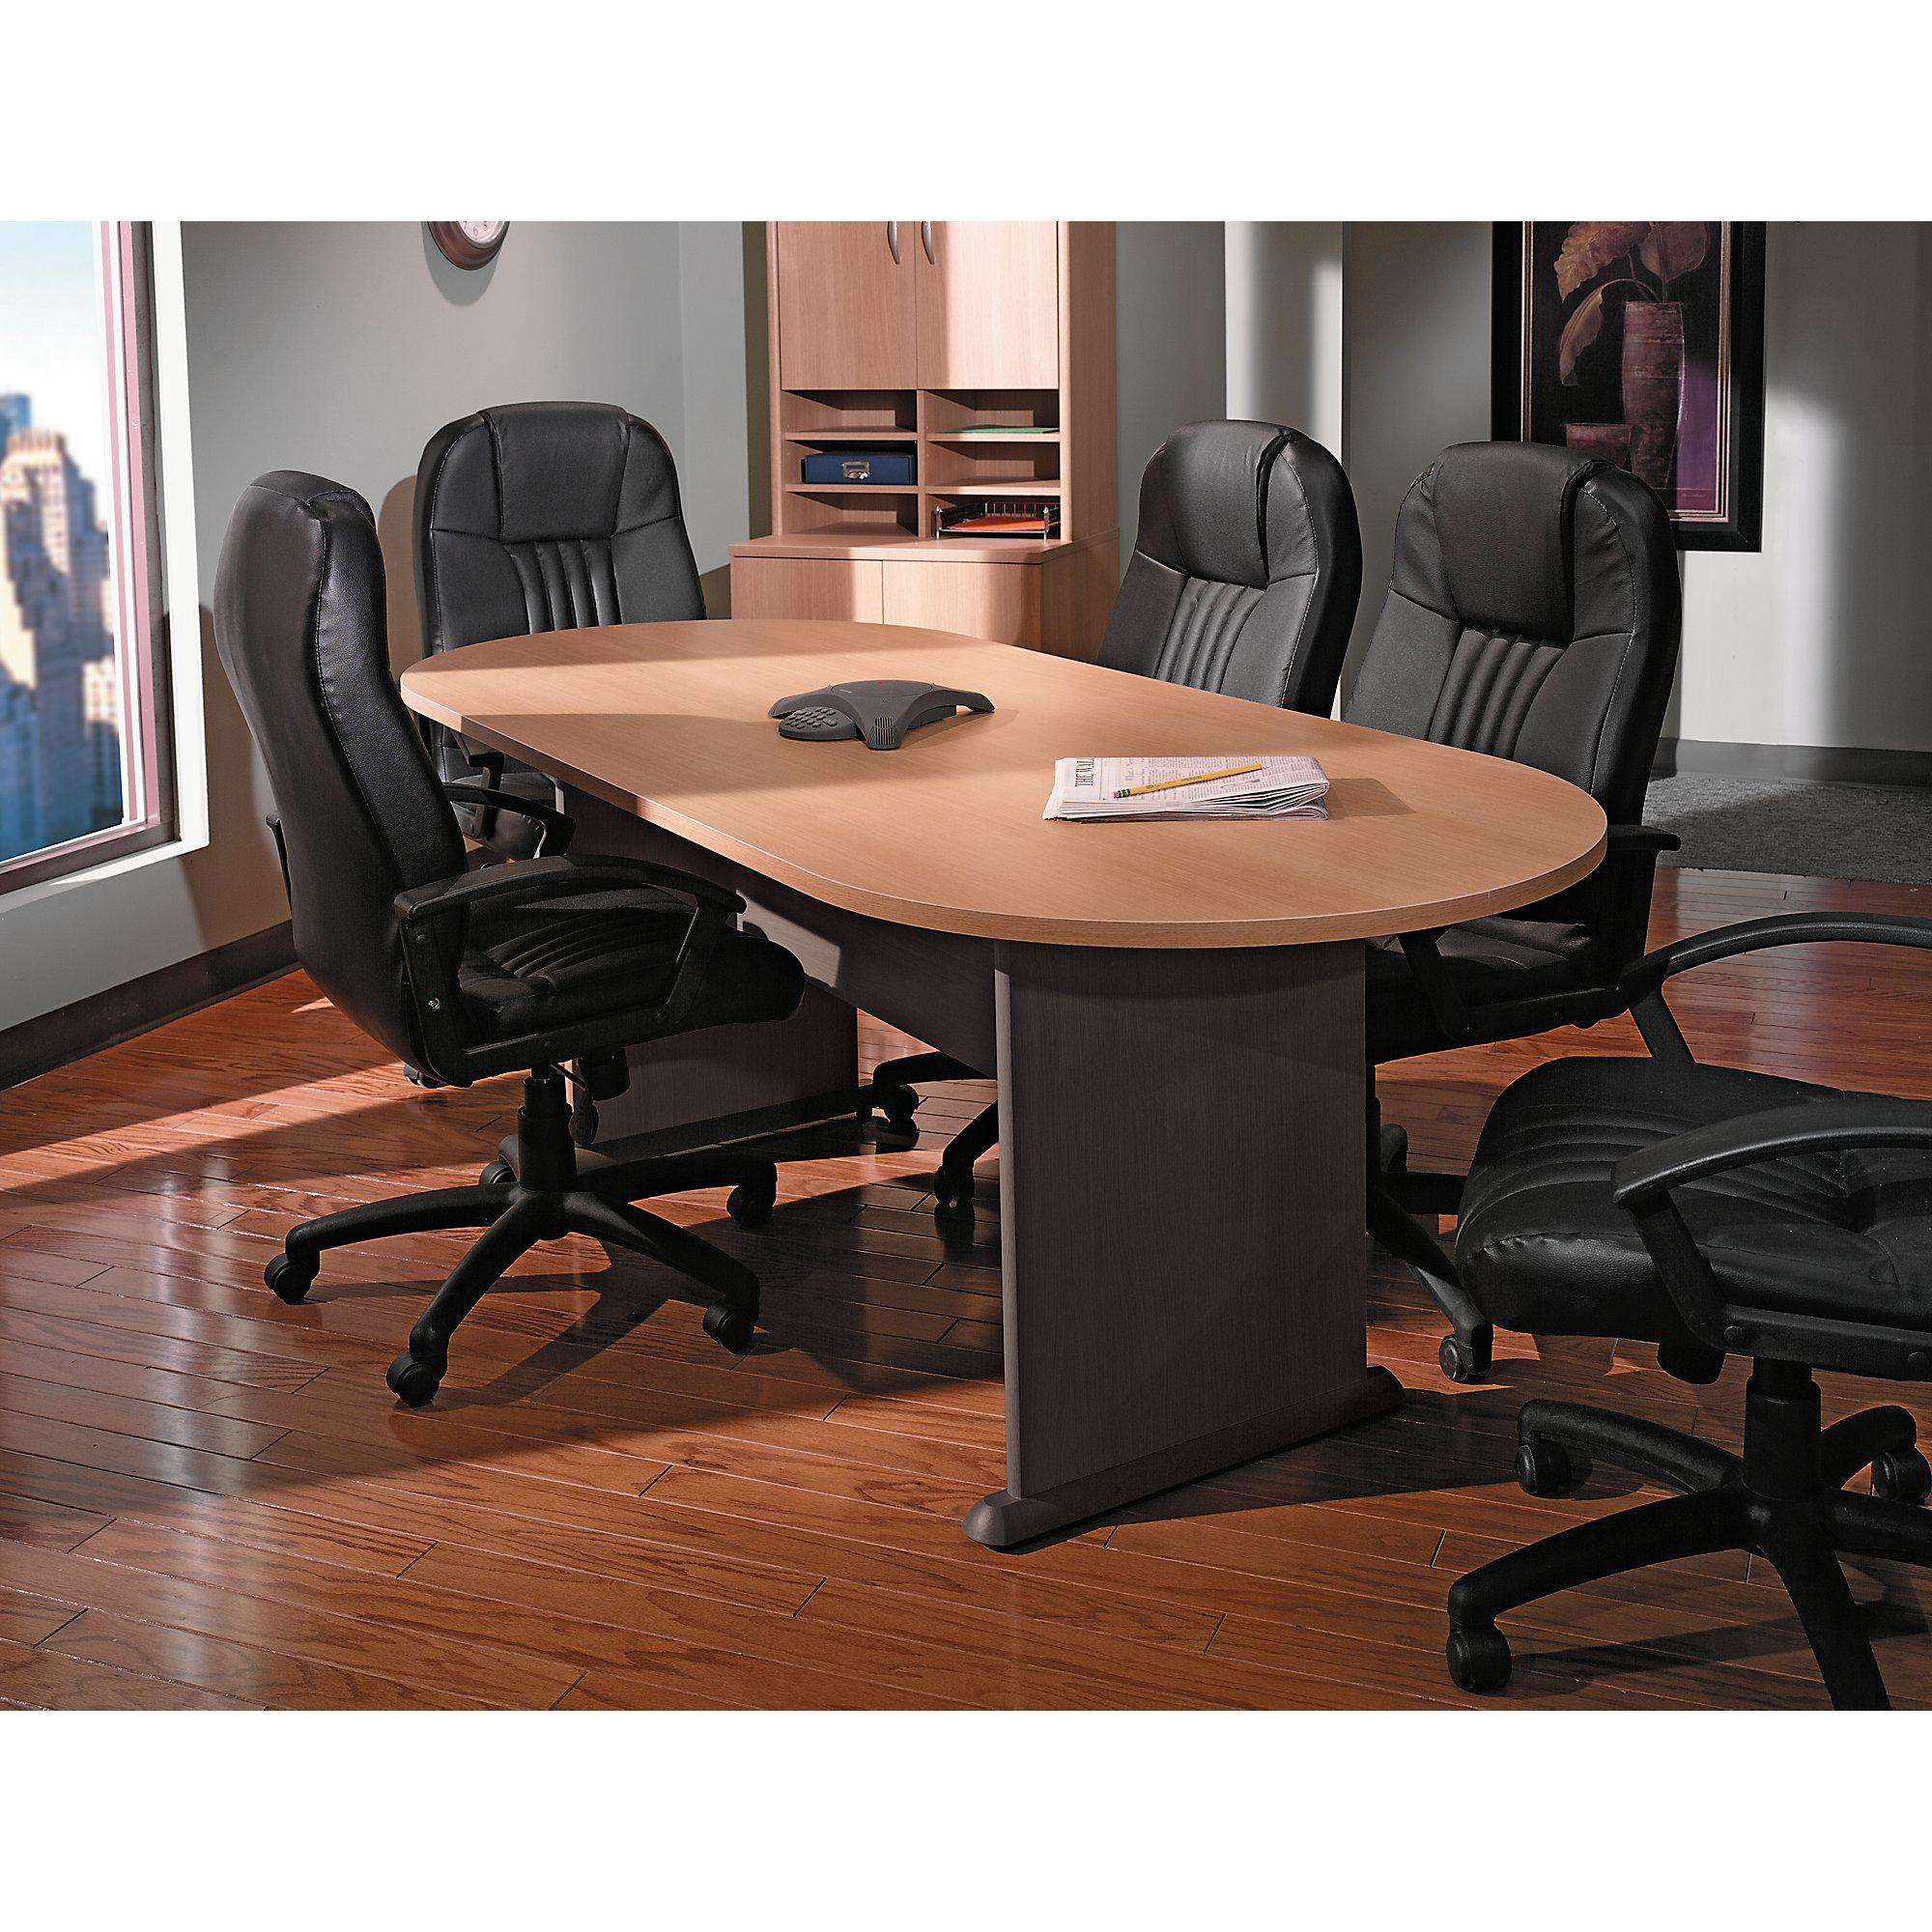 round office desk. delighful desk bbf conference table small round wire management square  table with office desk n